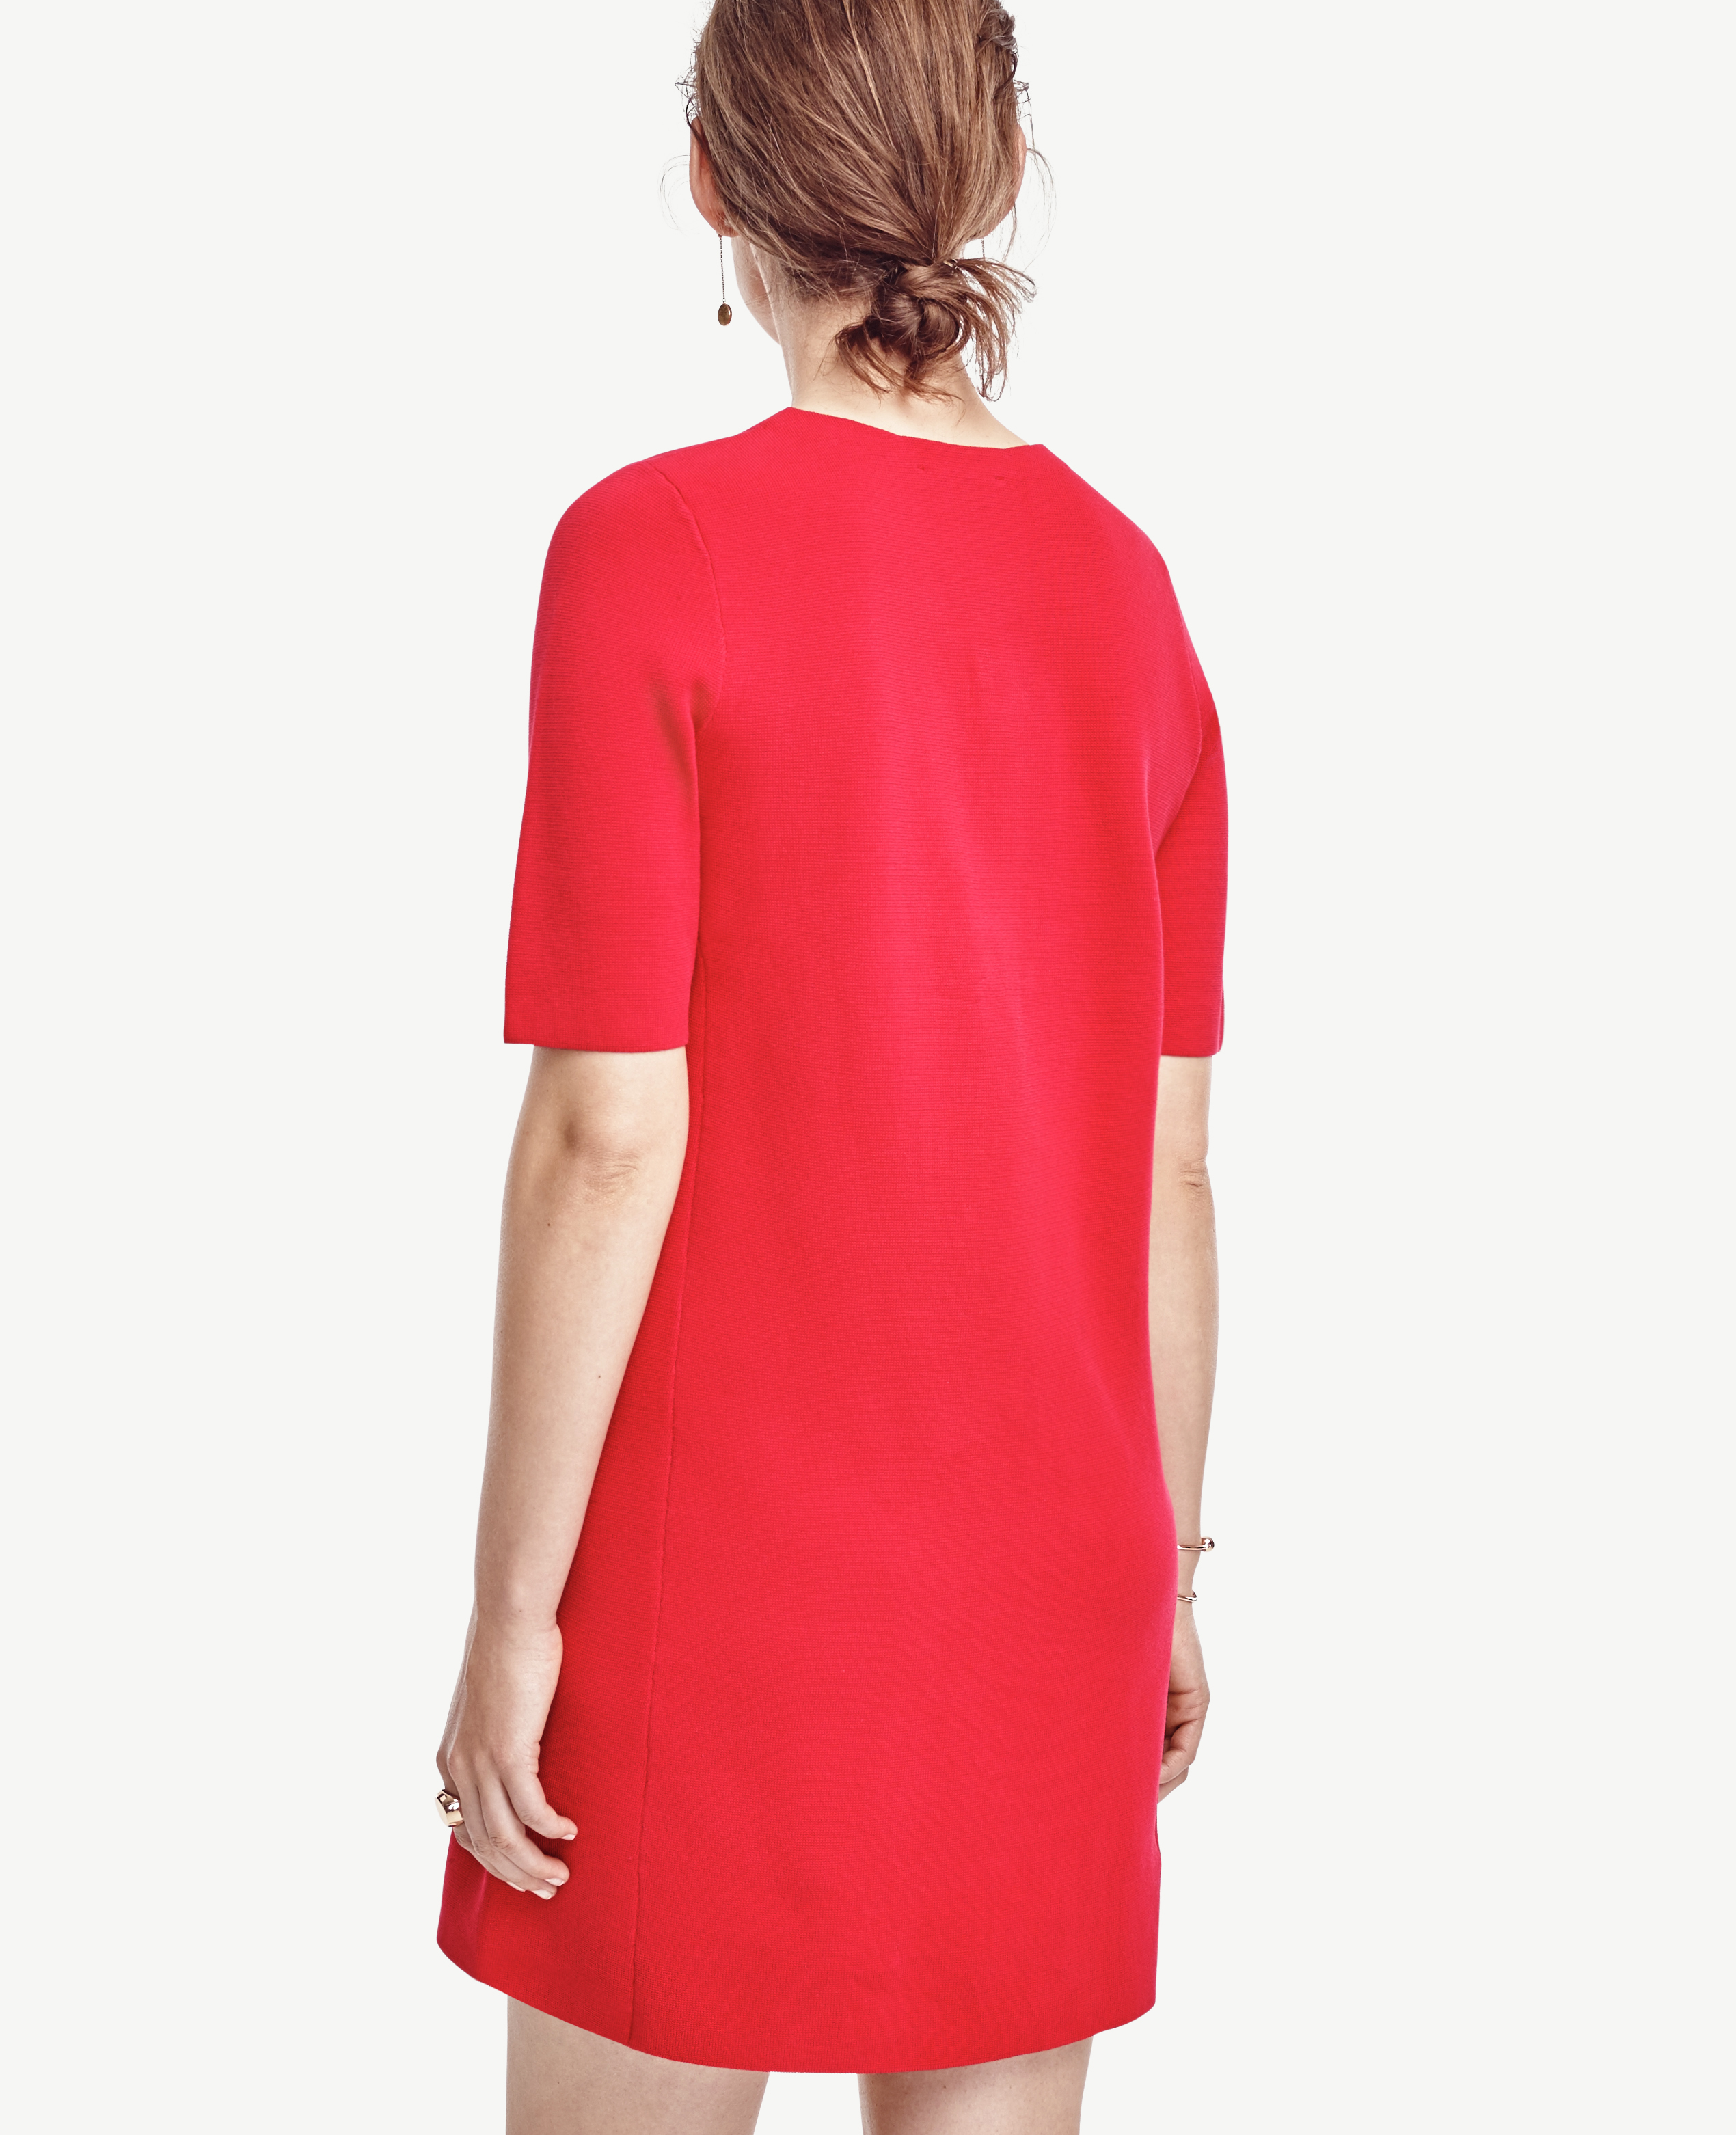 Ann taylor Short Sleeve Sweater Dress in Red | Lyst